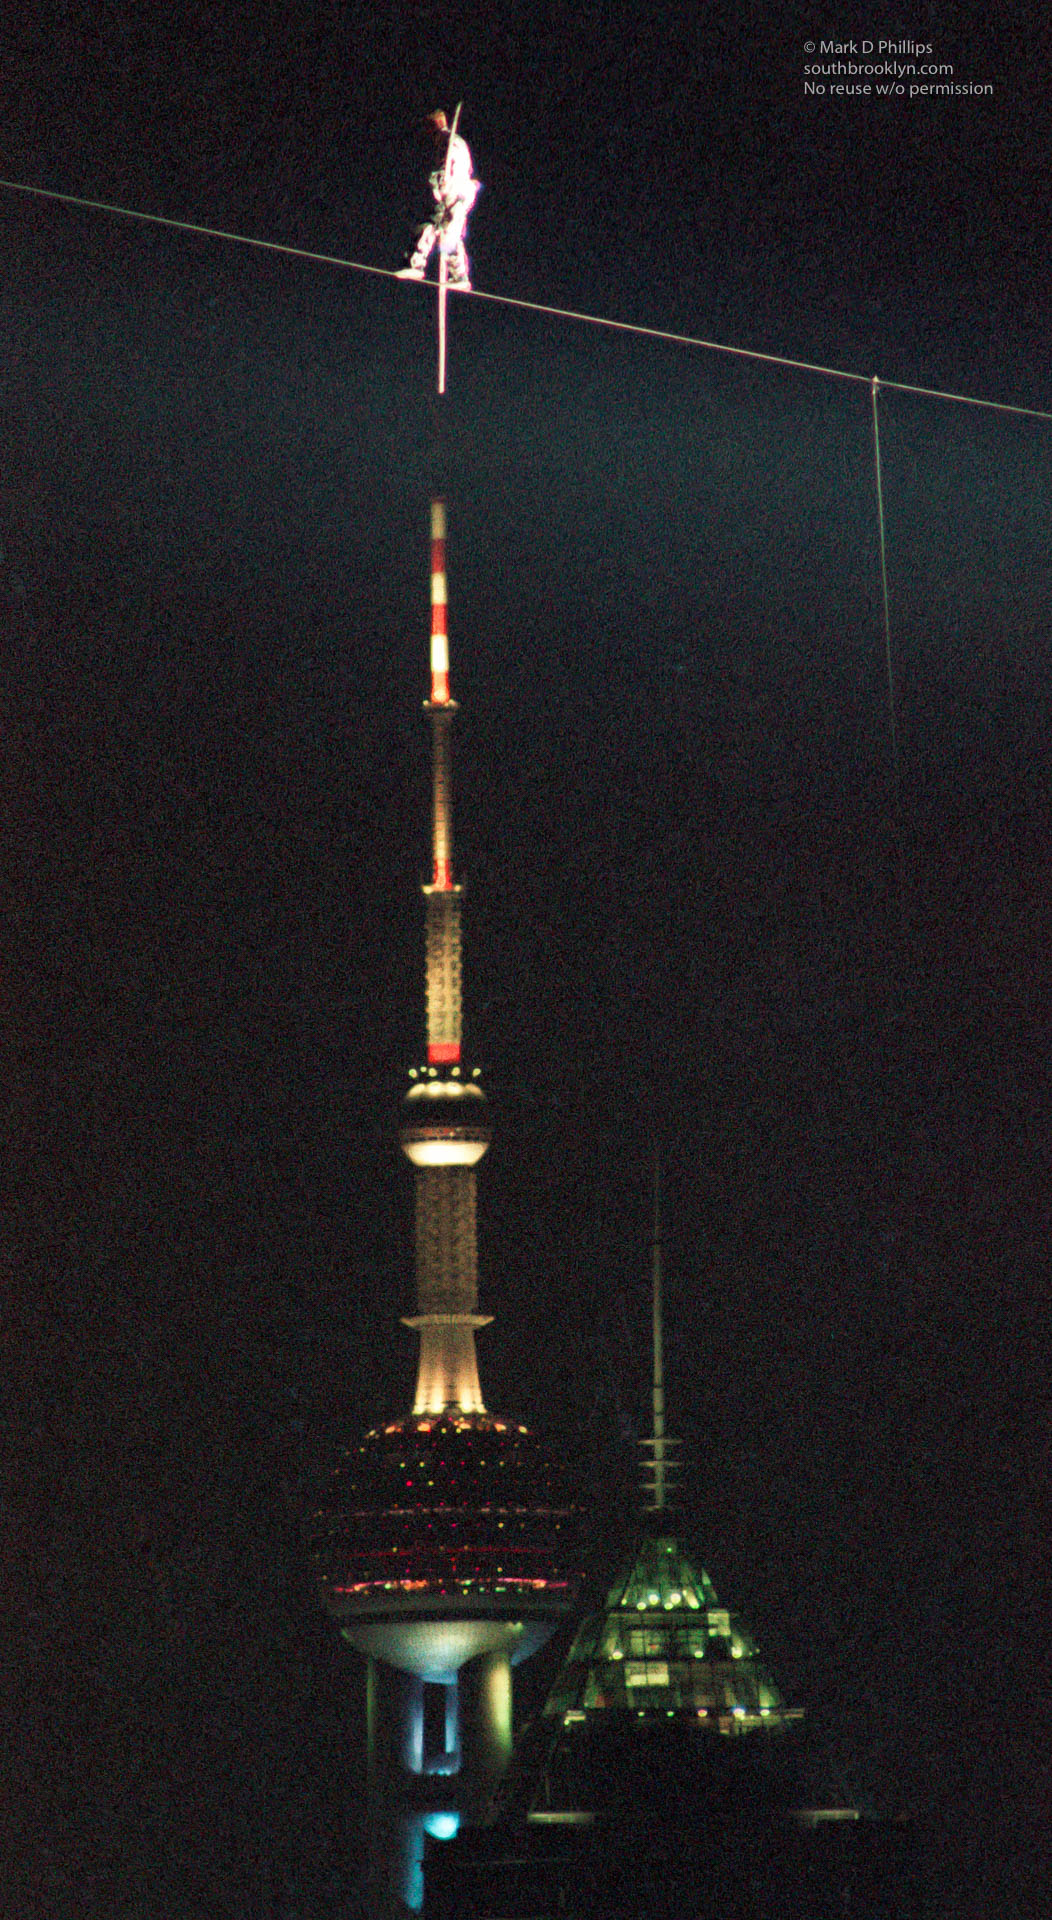 Jay Cochrane skywalks in Shanghai, China, for the opening night of the Shanghai Tourism Festival on September 24, 1996, passing above the Pearl of the Orient tower in the Pudong district.